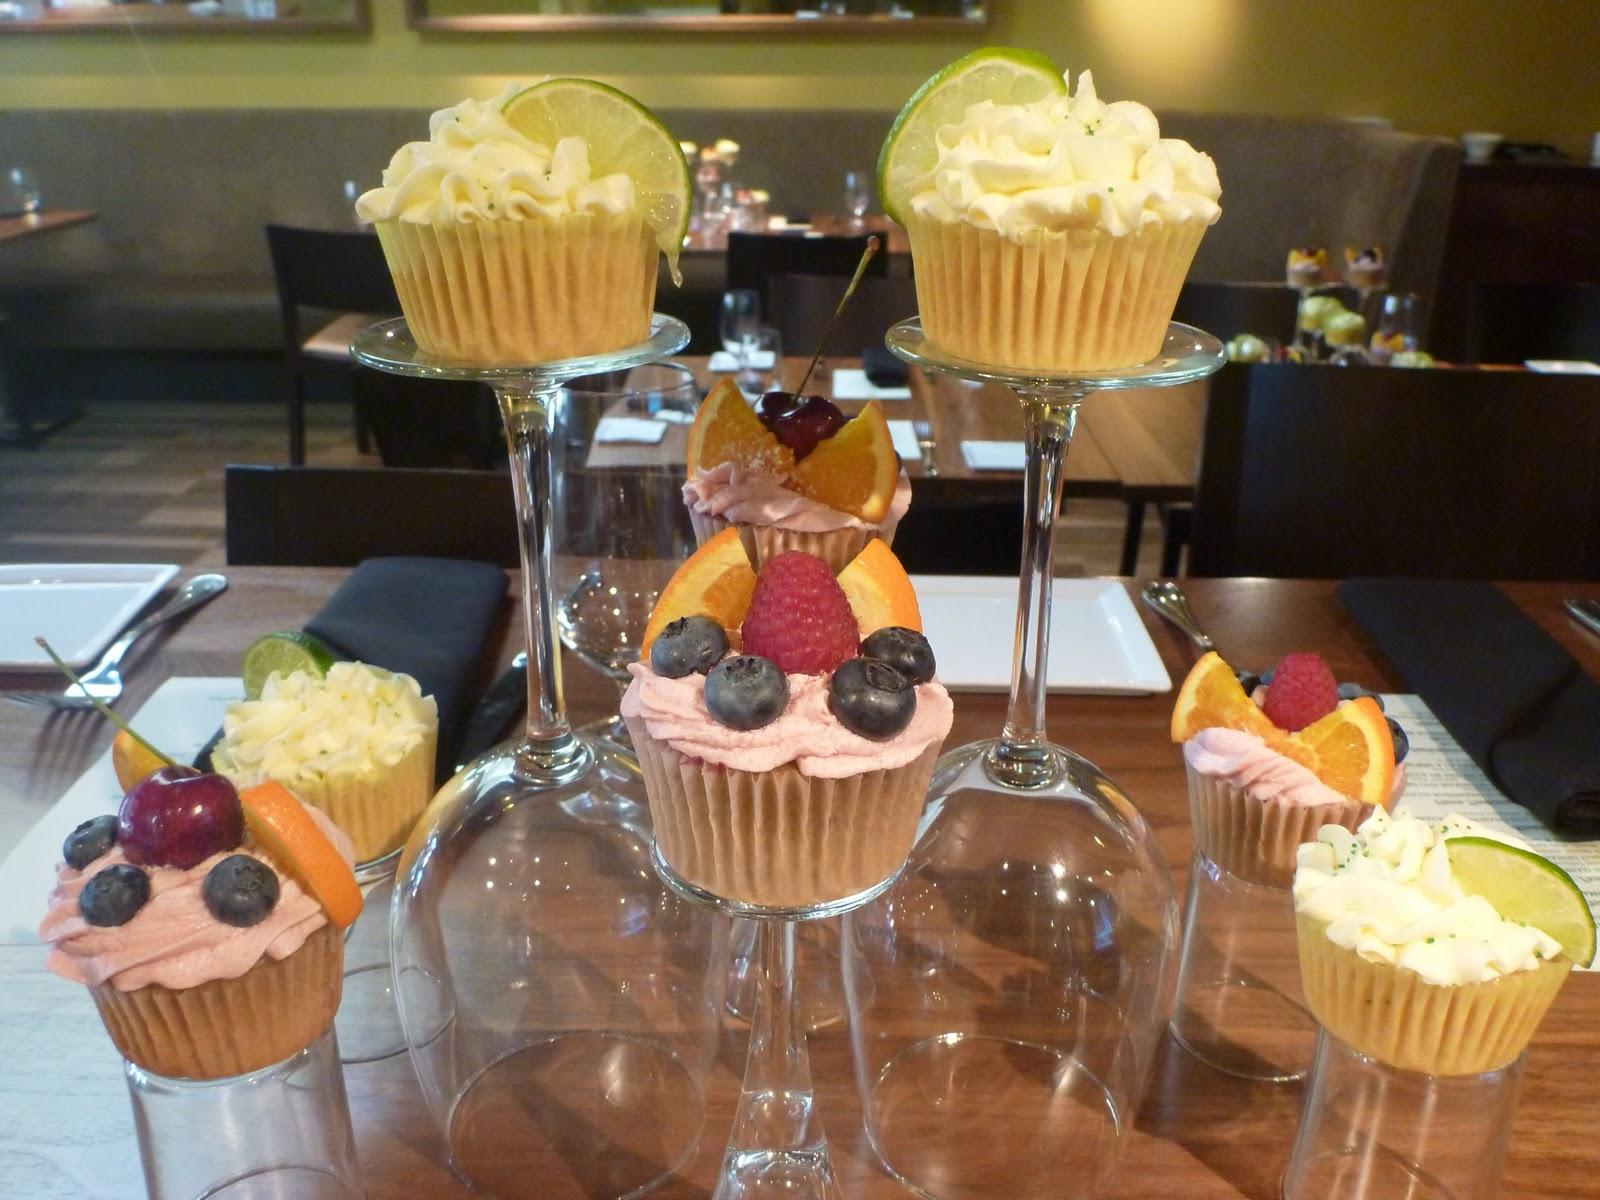 With the margarita cupcakes at